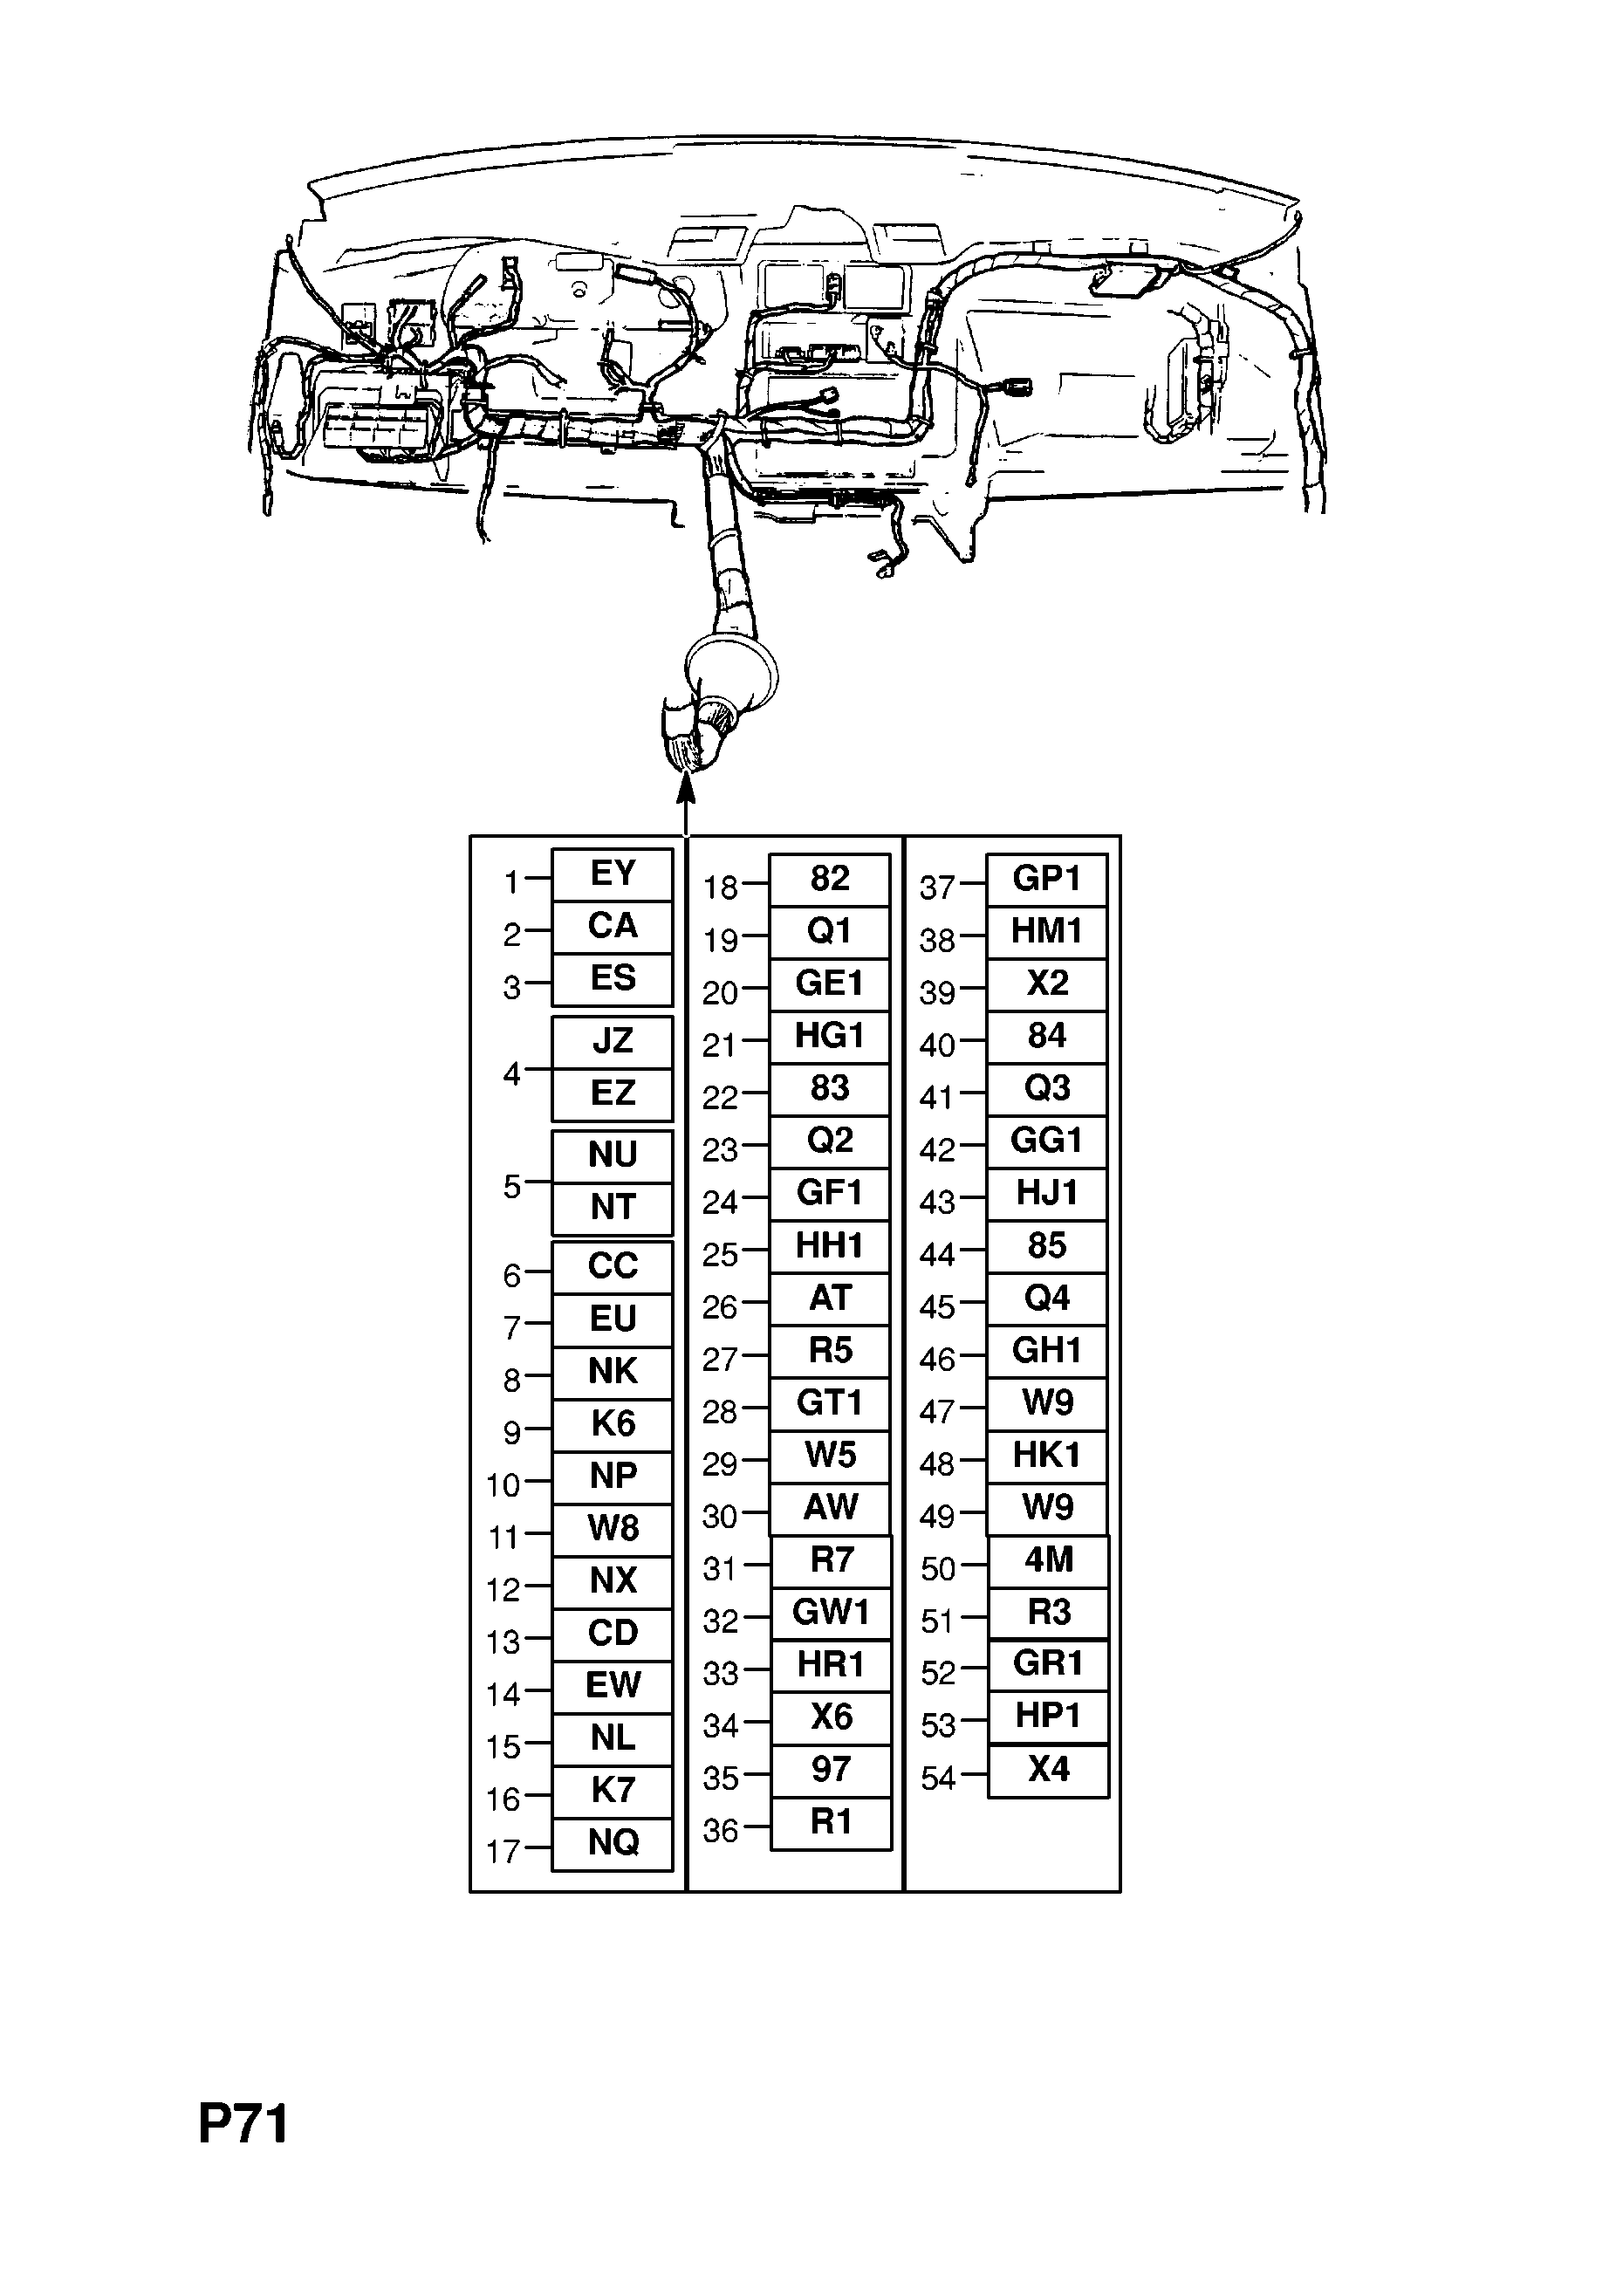 INSTRUMENT PANEL WIRING HARNESS (CONTD.) [EXCEPT AIR CONDITIONING FOR  VAUXHALL] OPEL CALIBRA